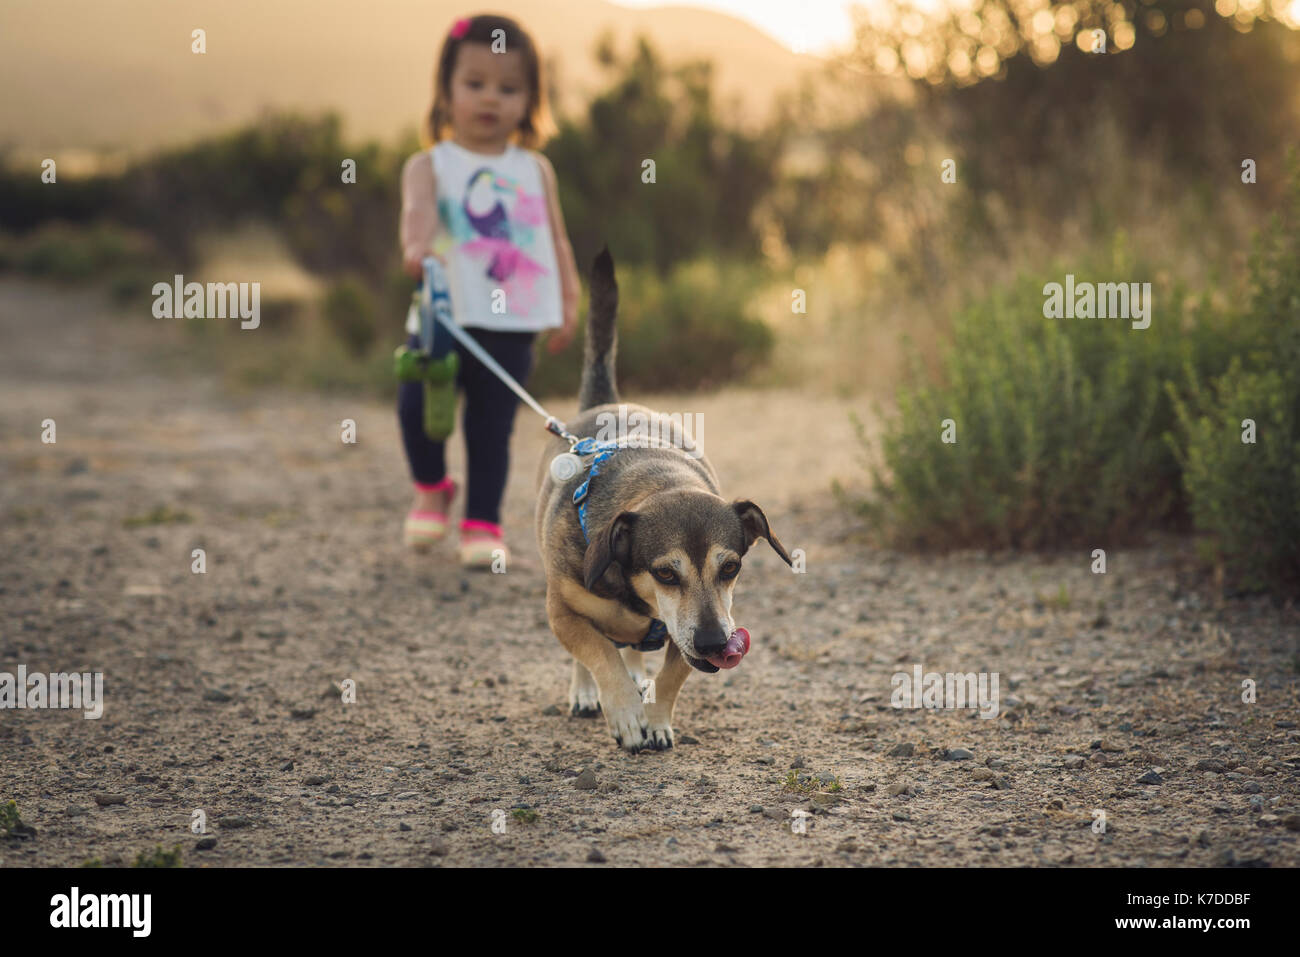 Full length of girl with dog walking on field - Stock Image